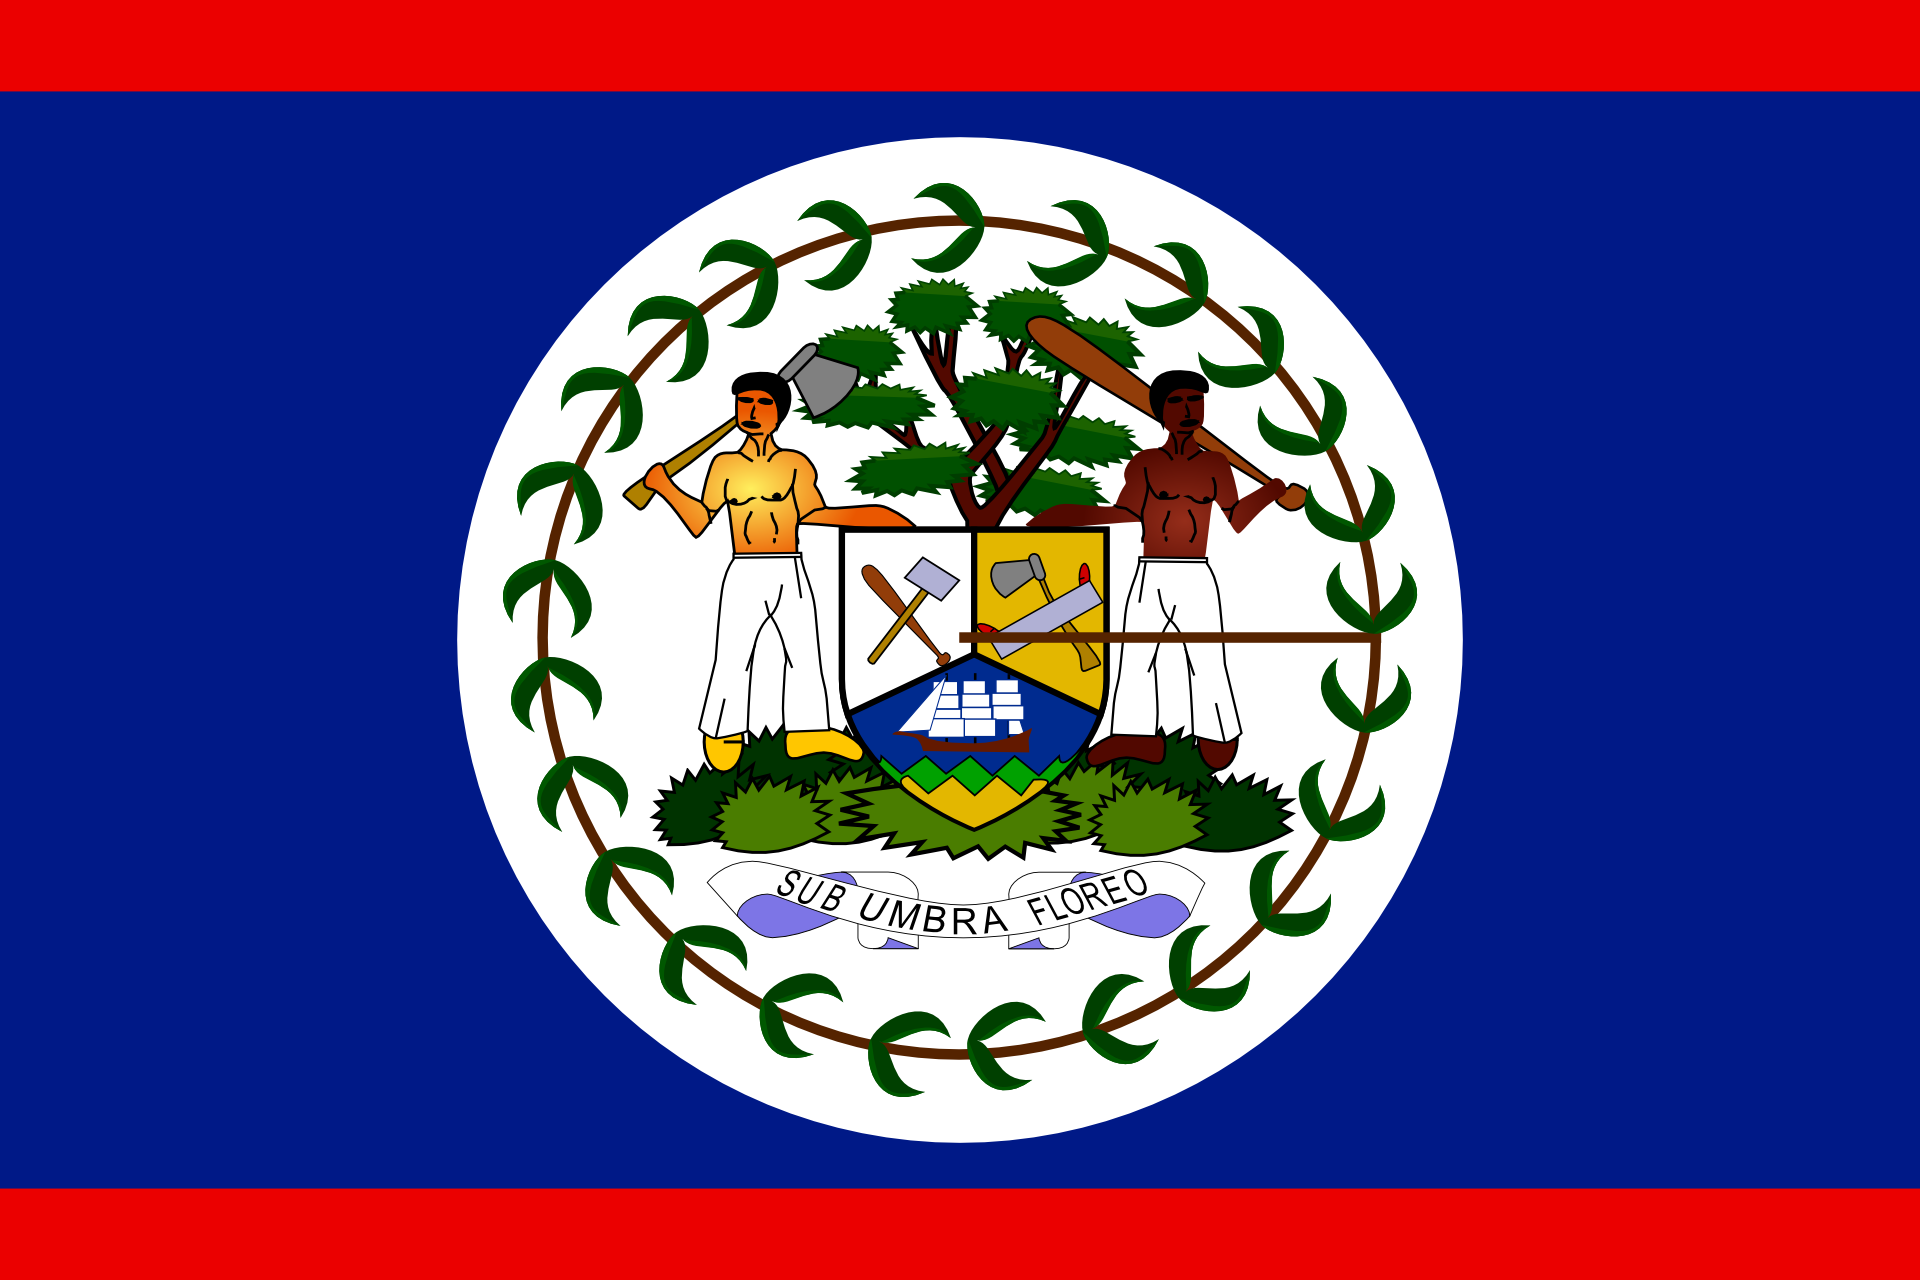 Otubio.com - Belize flag